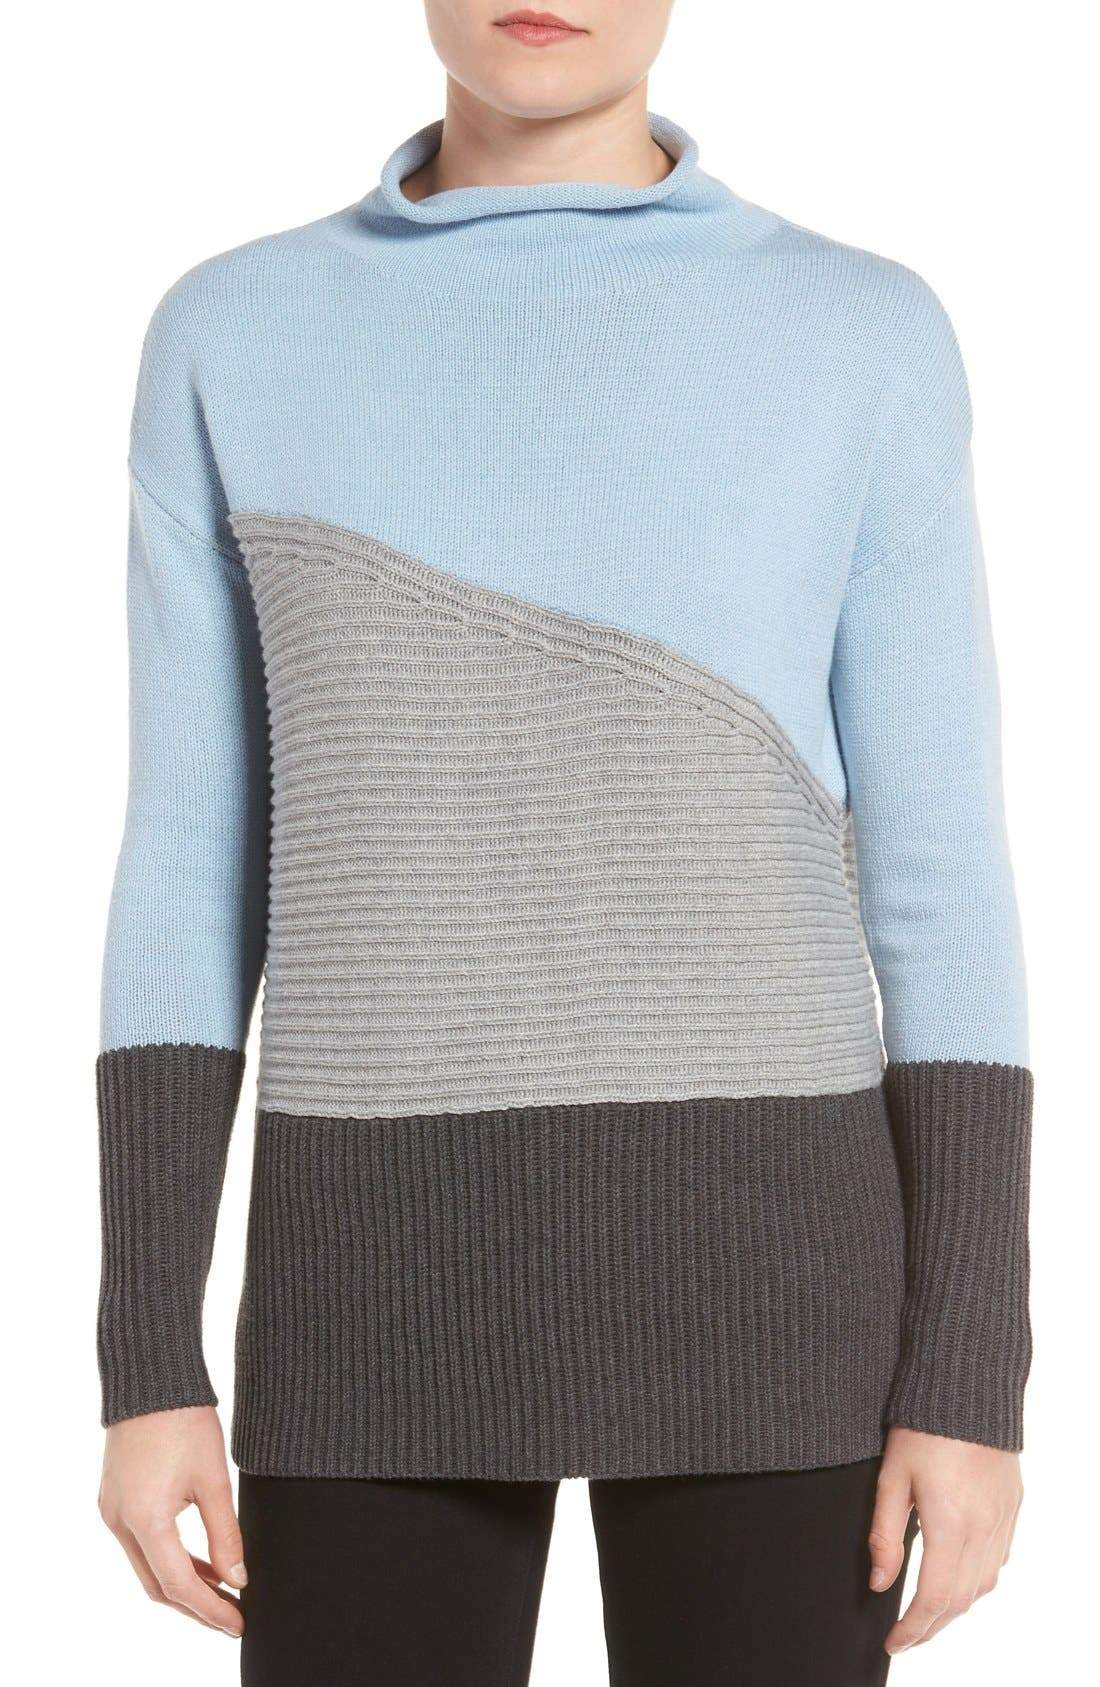 Main Image - Vince Camuto Colorblock Turtleneck Sweater (Regular & Petite)